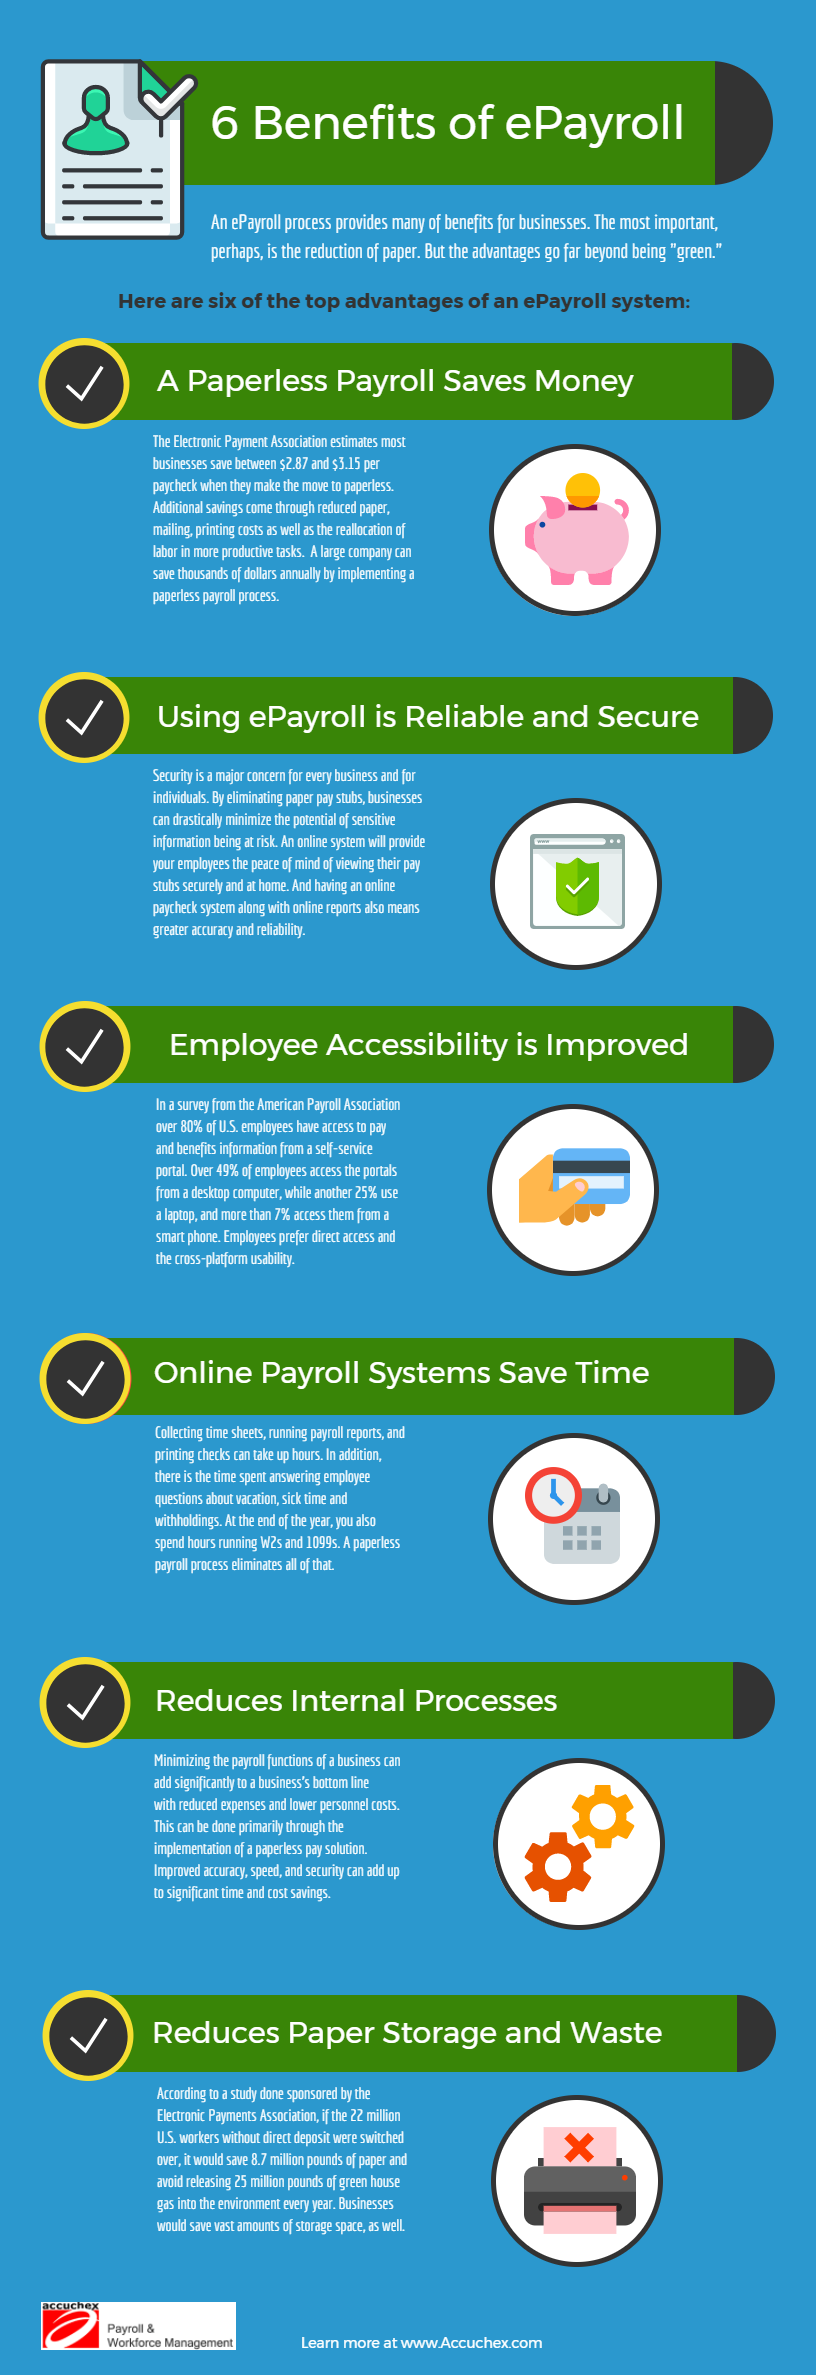 6 Benefits of ePayroll.png